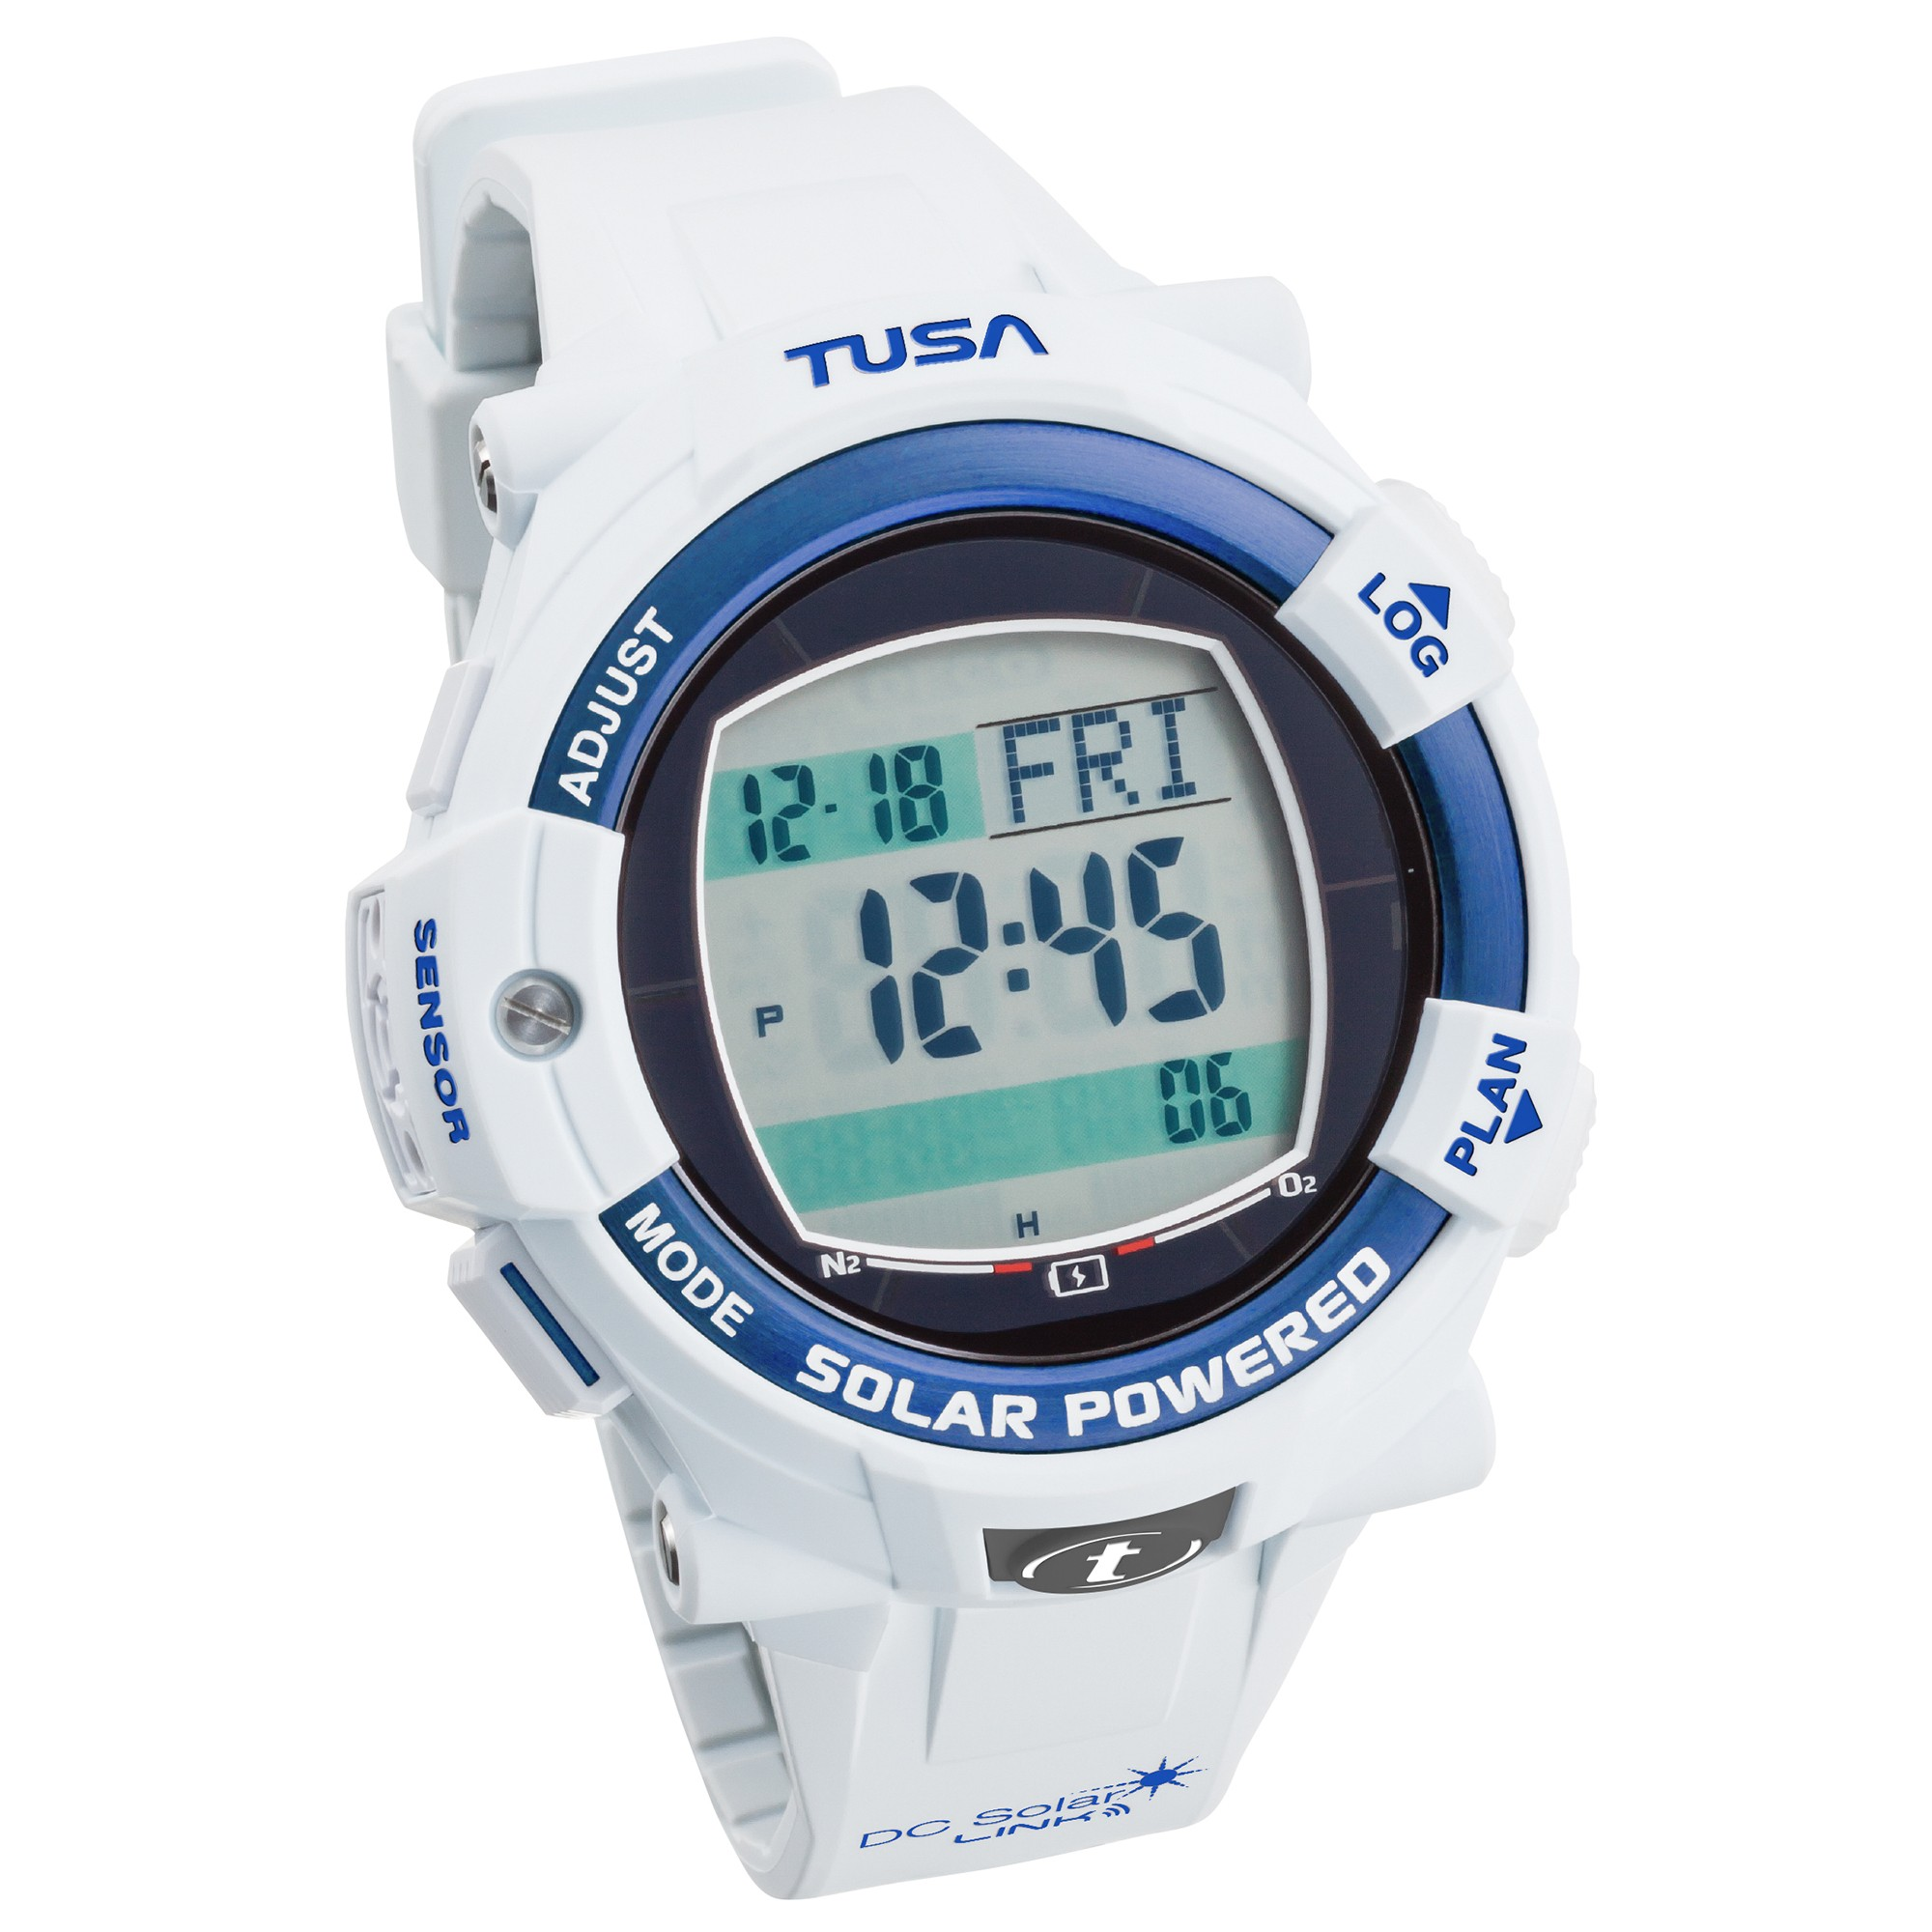 Tusa DC Solar Link Dive Computer & Watch